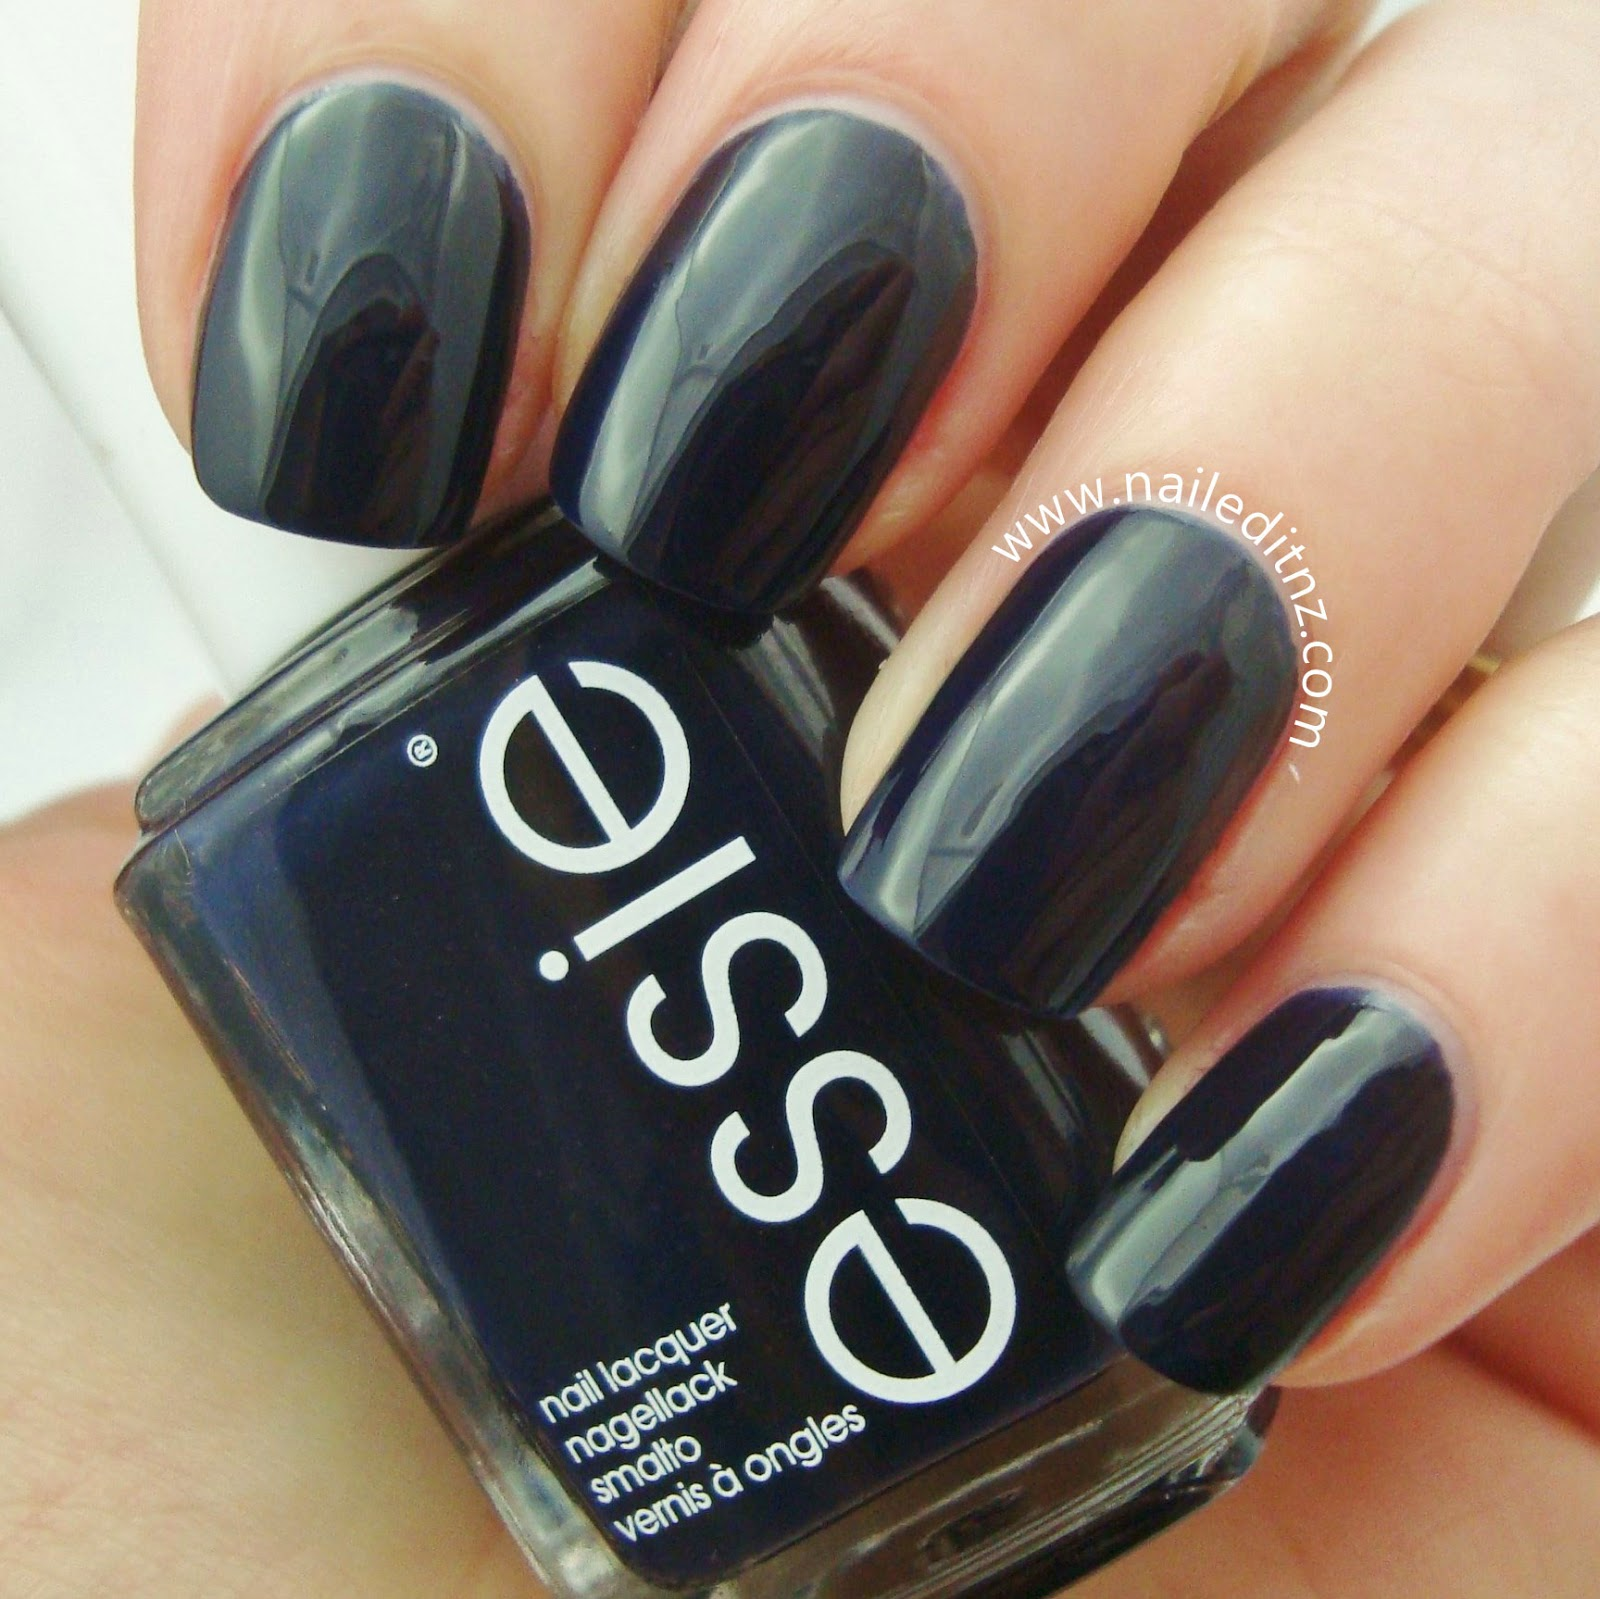 Essie Nail Lacquer | Swatches and Reviews